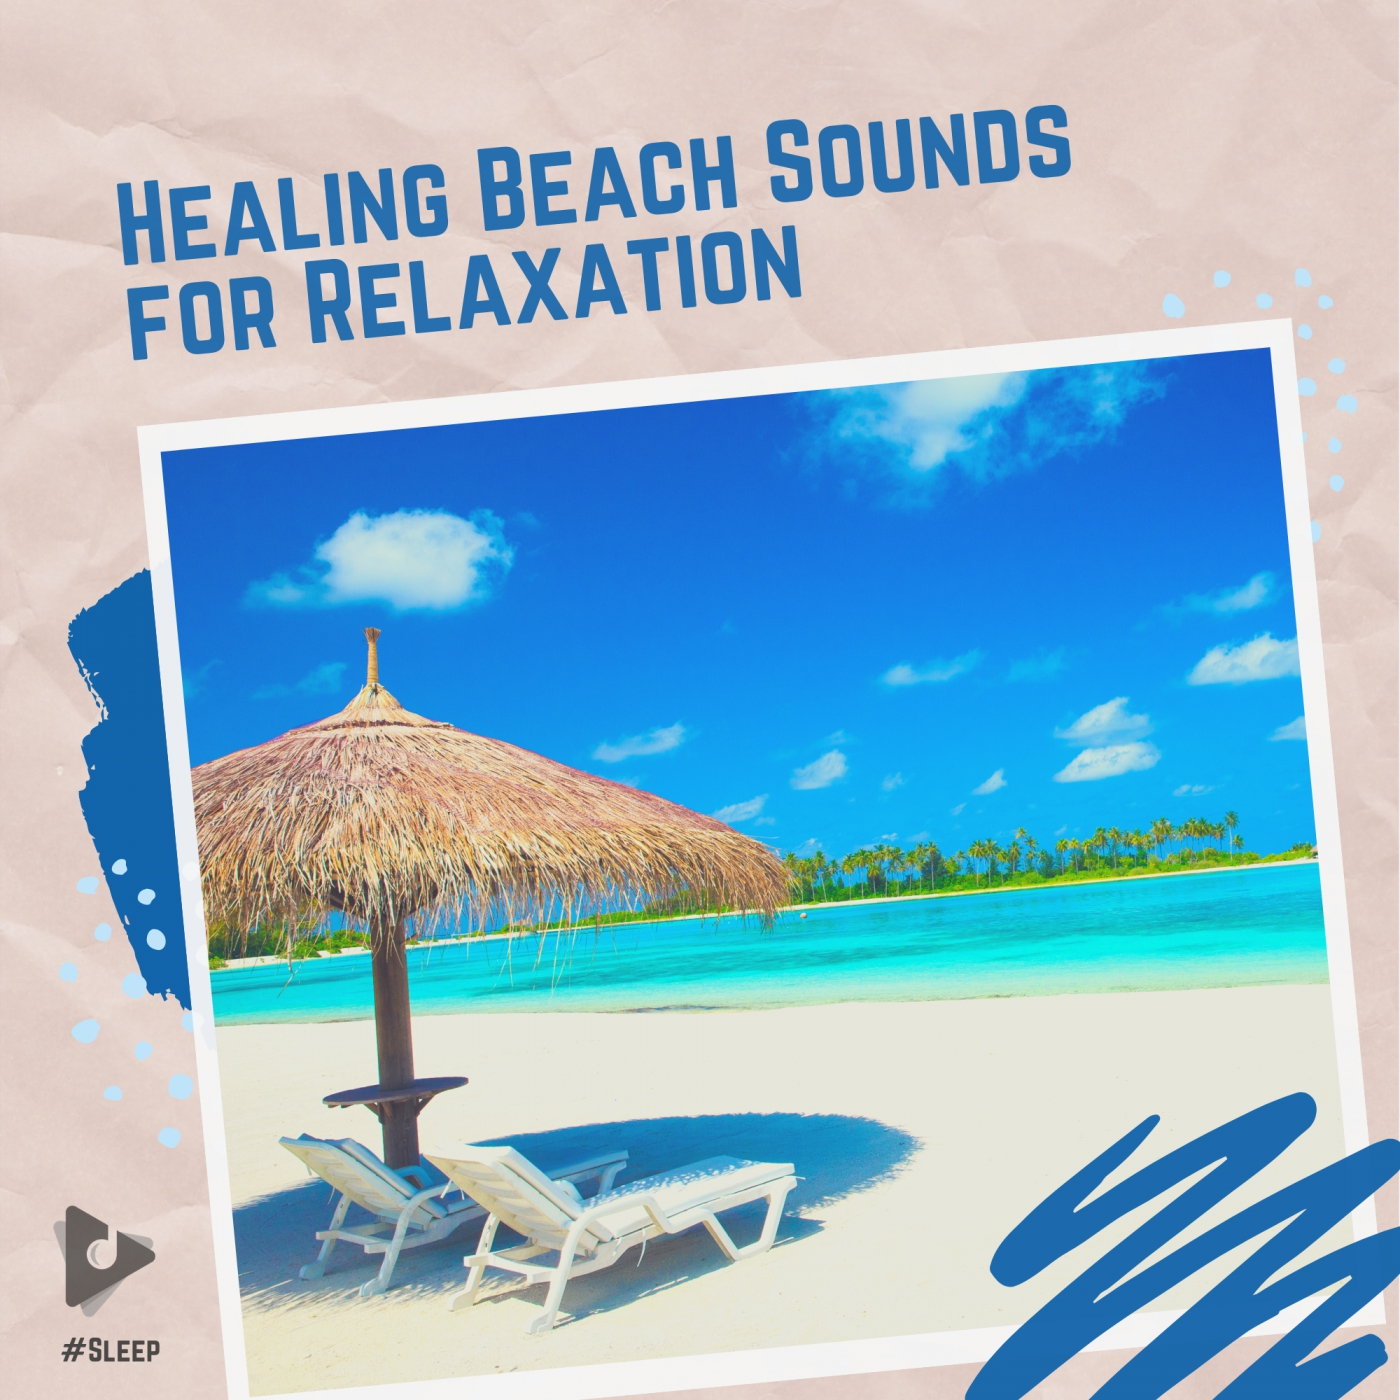 Healing Beach Sounds for Relaxation